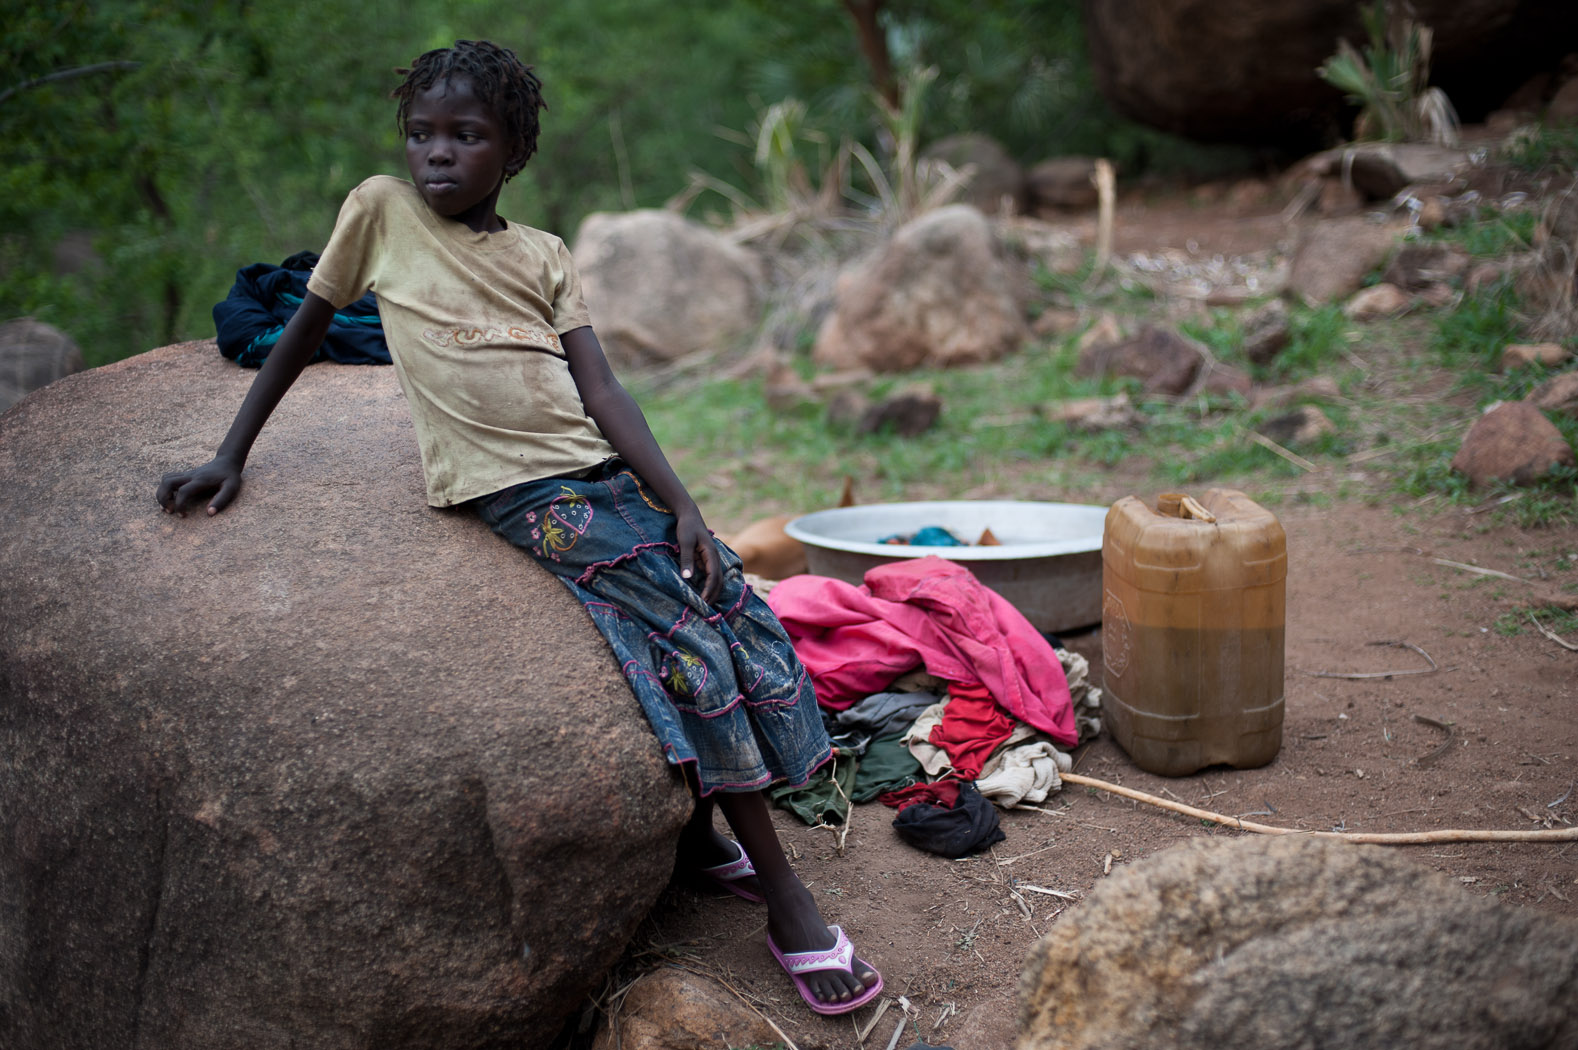 A girl stands next to her family's washing near a cave in the Nuba mountains. Life has taken an almost everyday quality in the hills above Kurchi, as the families taking refuge here continue their daily chores amongst the rocks.